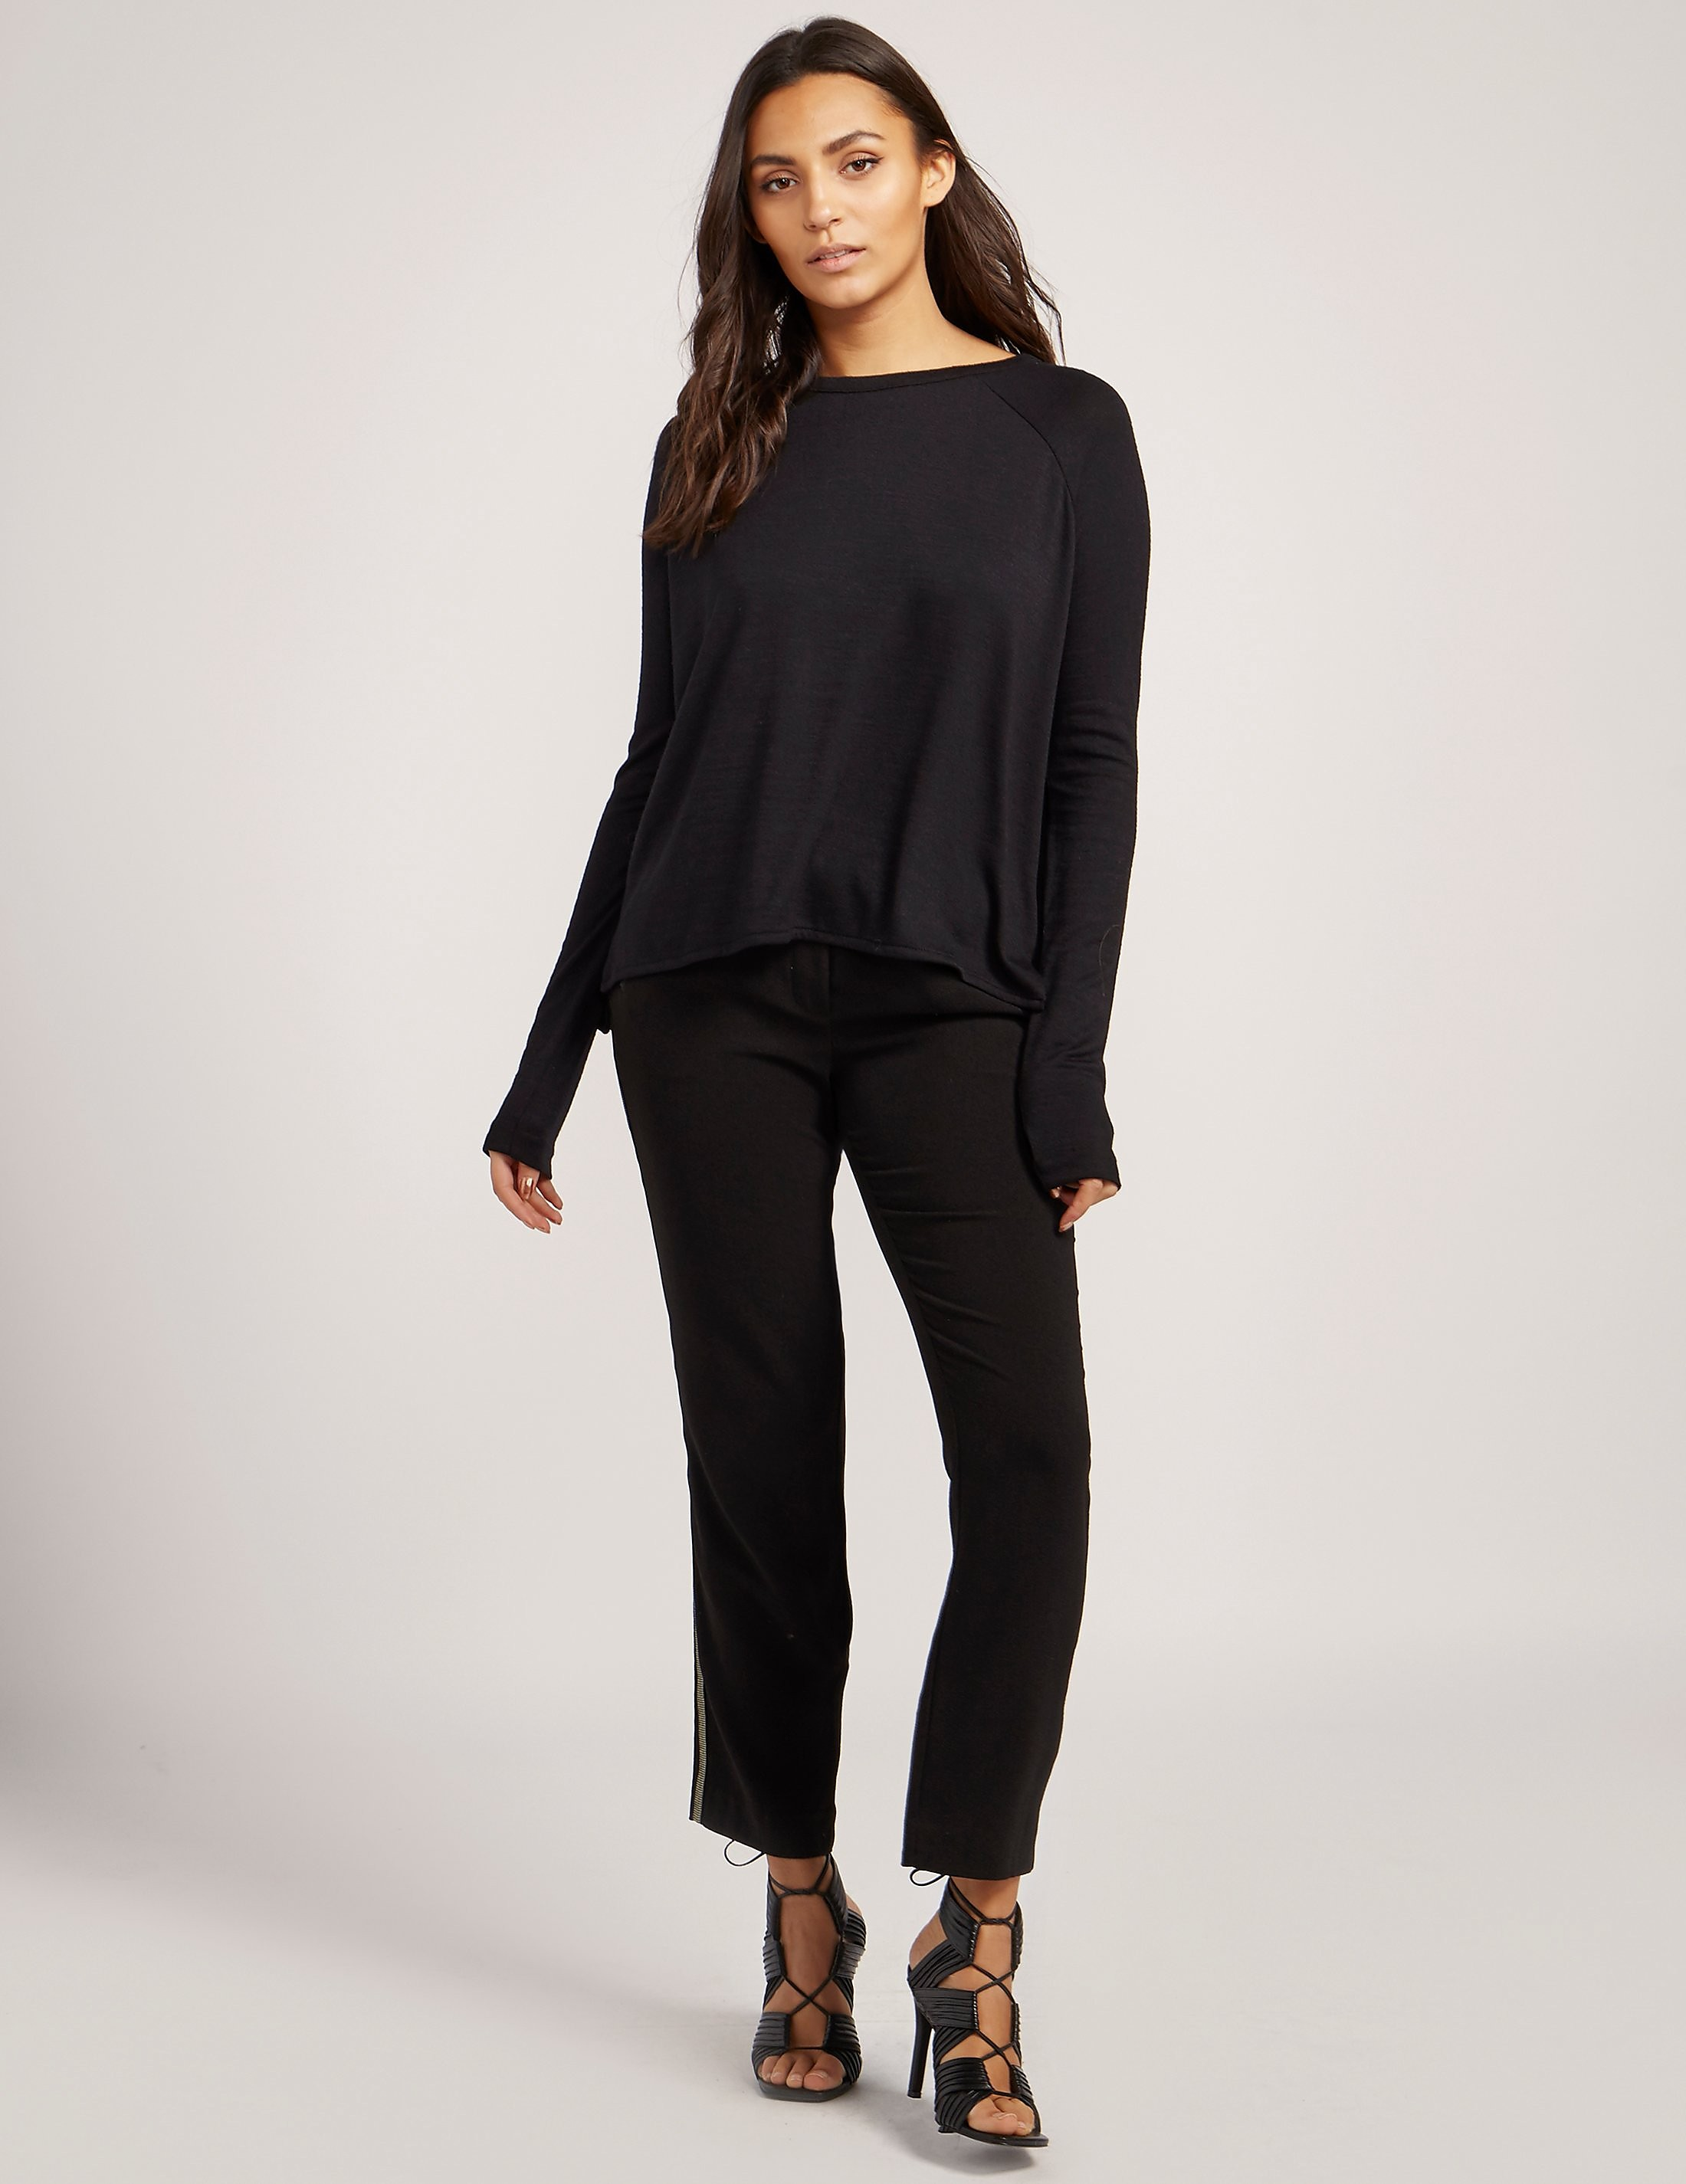 Rag & Bone Camden Long Sleeve T-Shirt